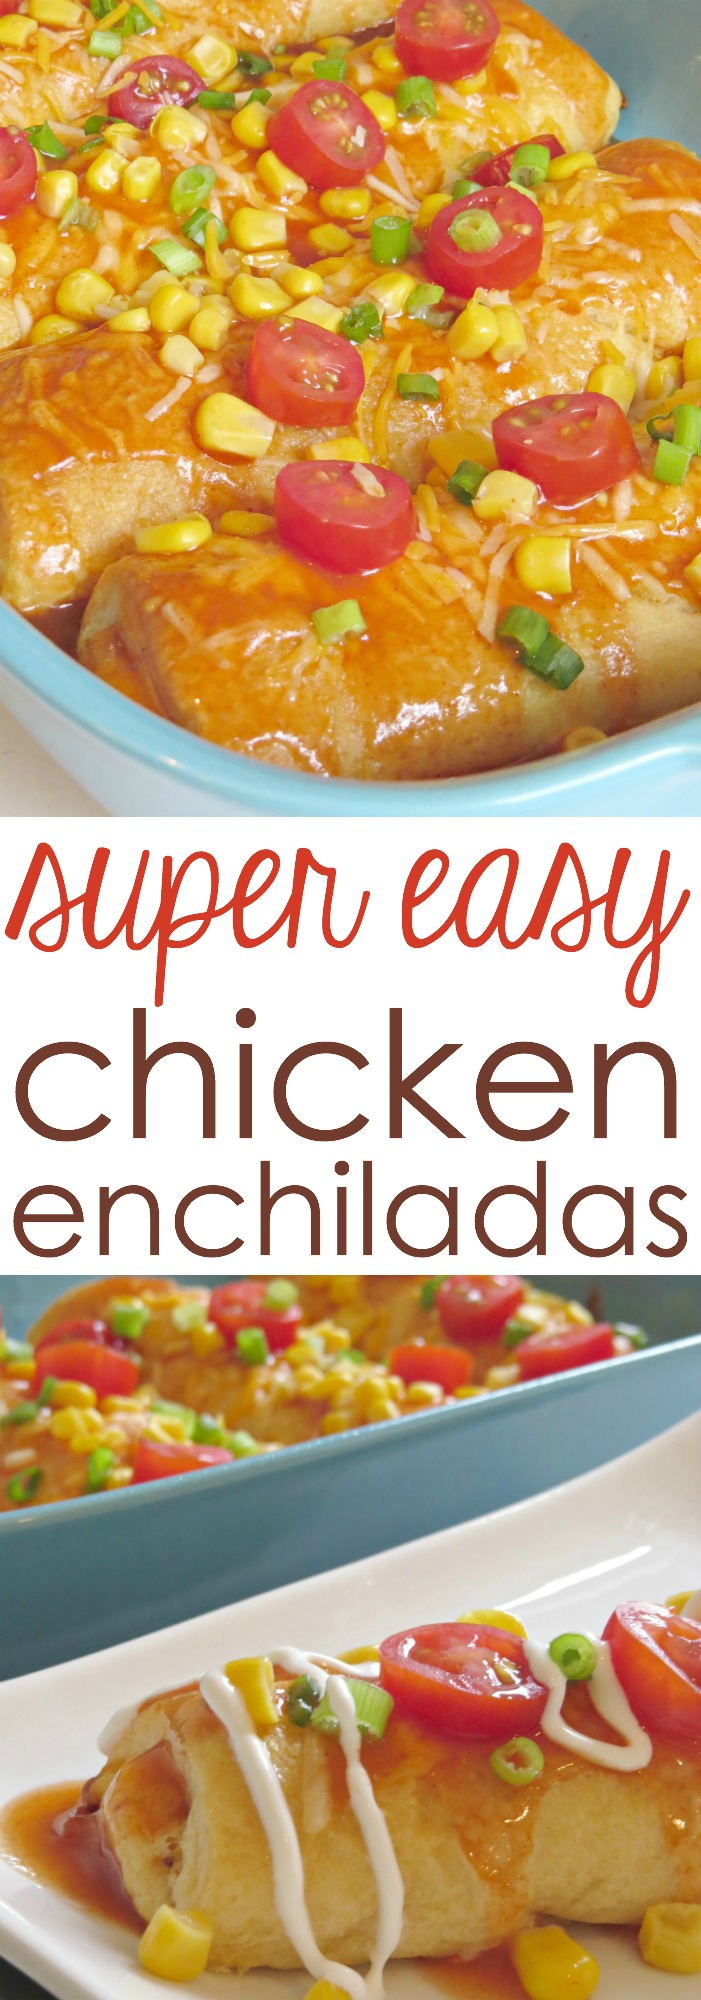 Best Chicken Enchilada Recipe